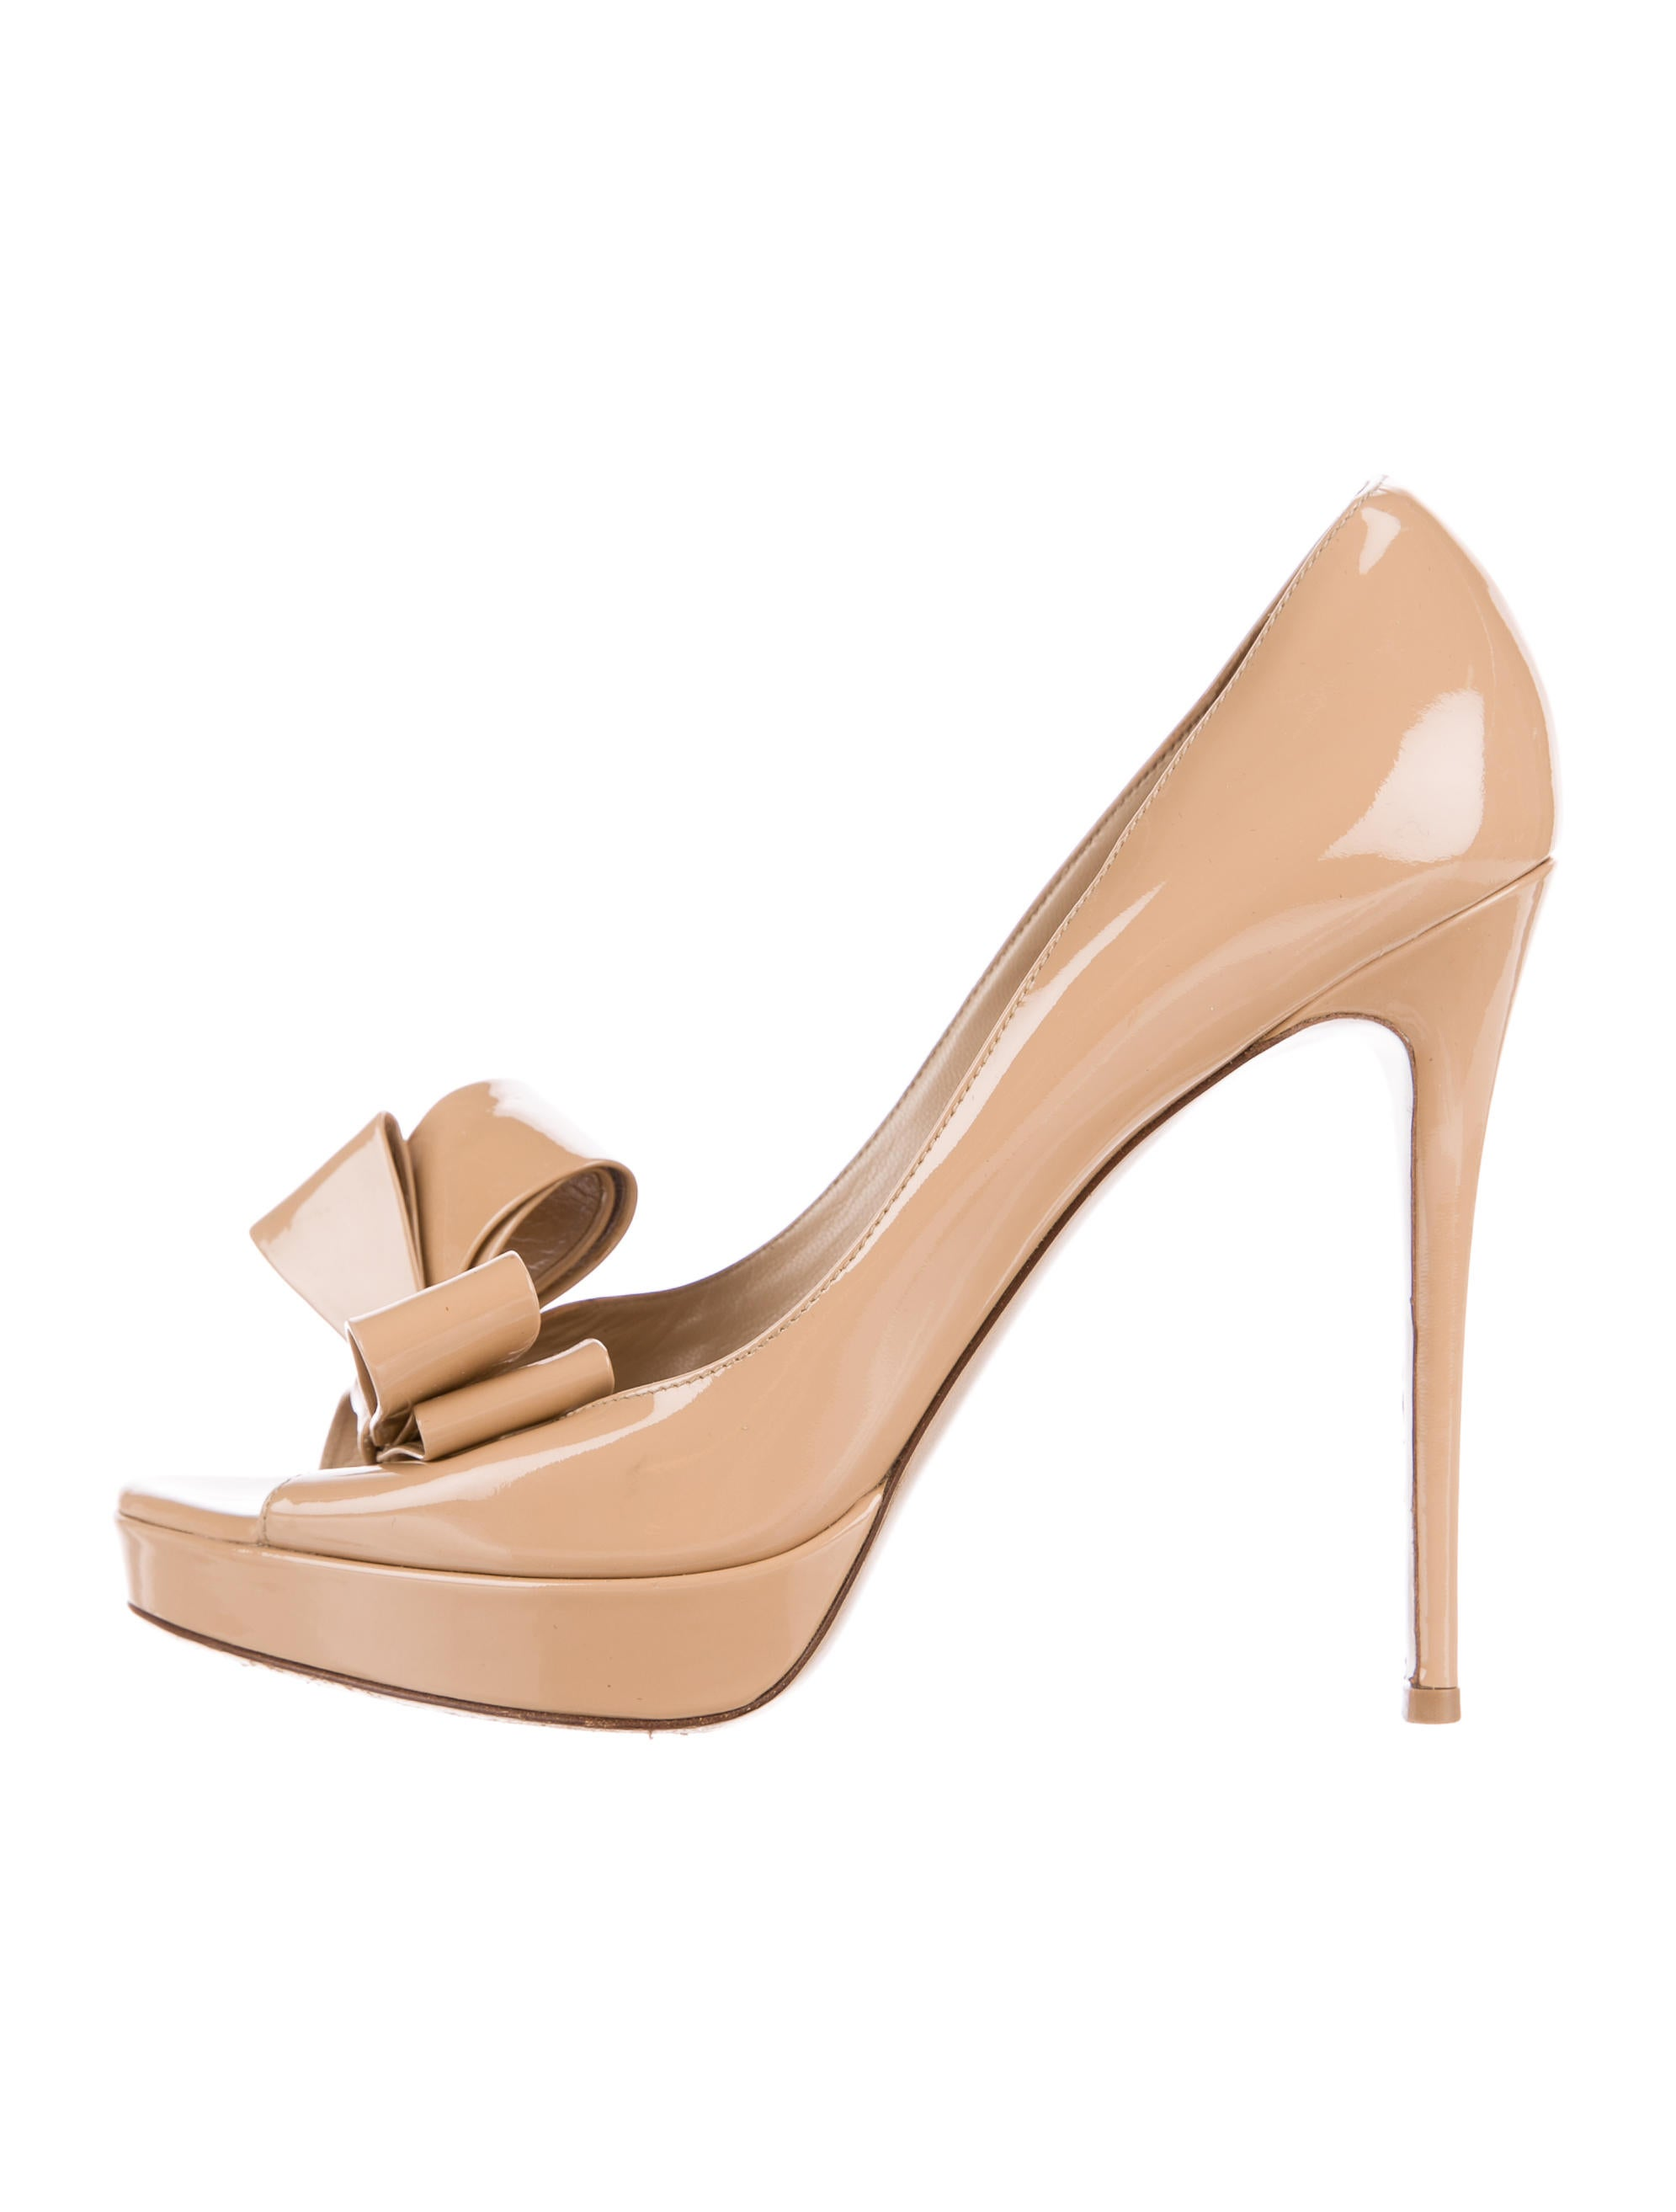 Valentino Bow Accented Leather Pumps clearance in China low cost cheap online recommend cheap price clearance sneakernews clearance latest deck5sI